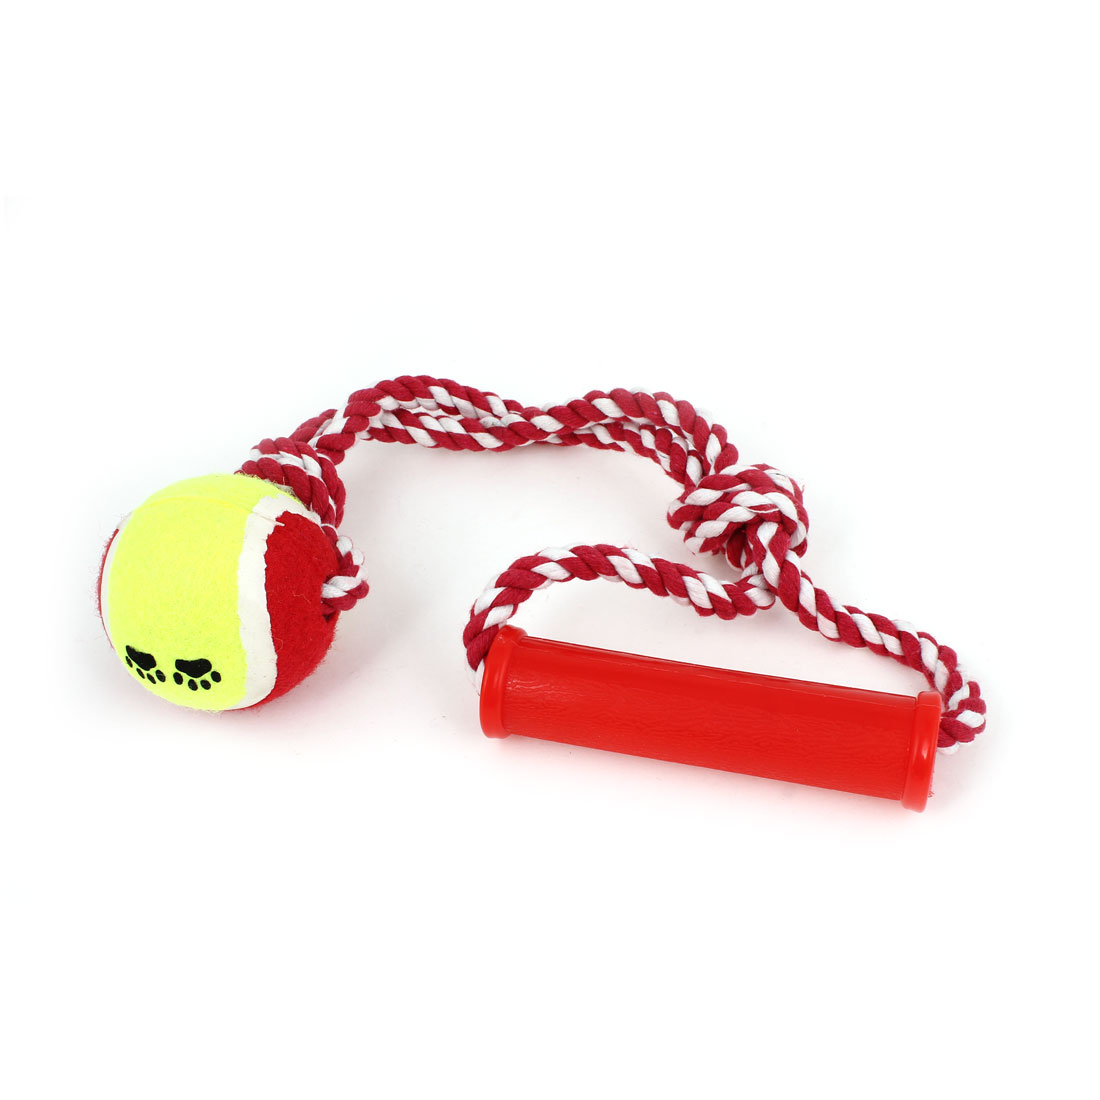 Pet Dog Puppy Braided Rope Tennis Ball Grinding Clean Teeth Playing Chew Squeeze Toy Red Yellow Green